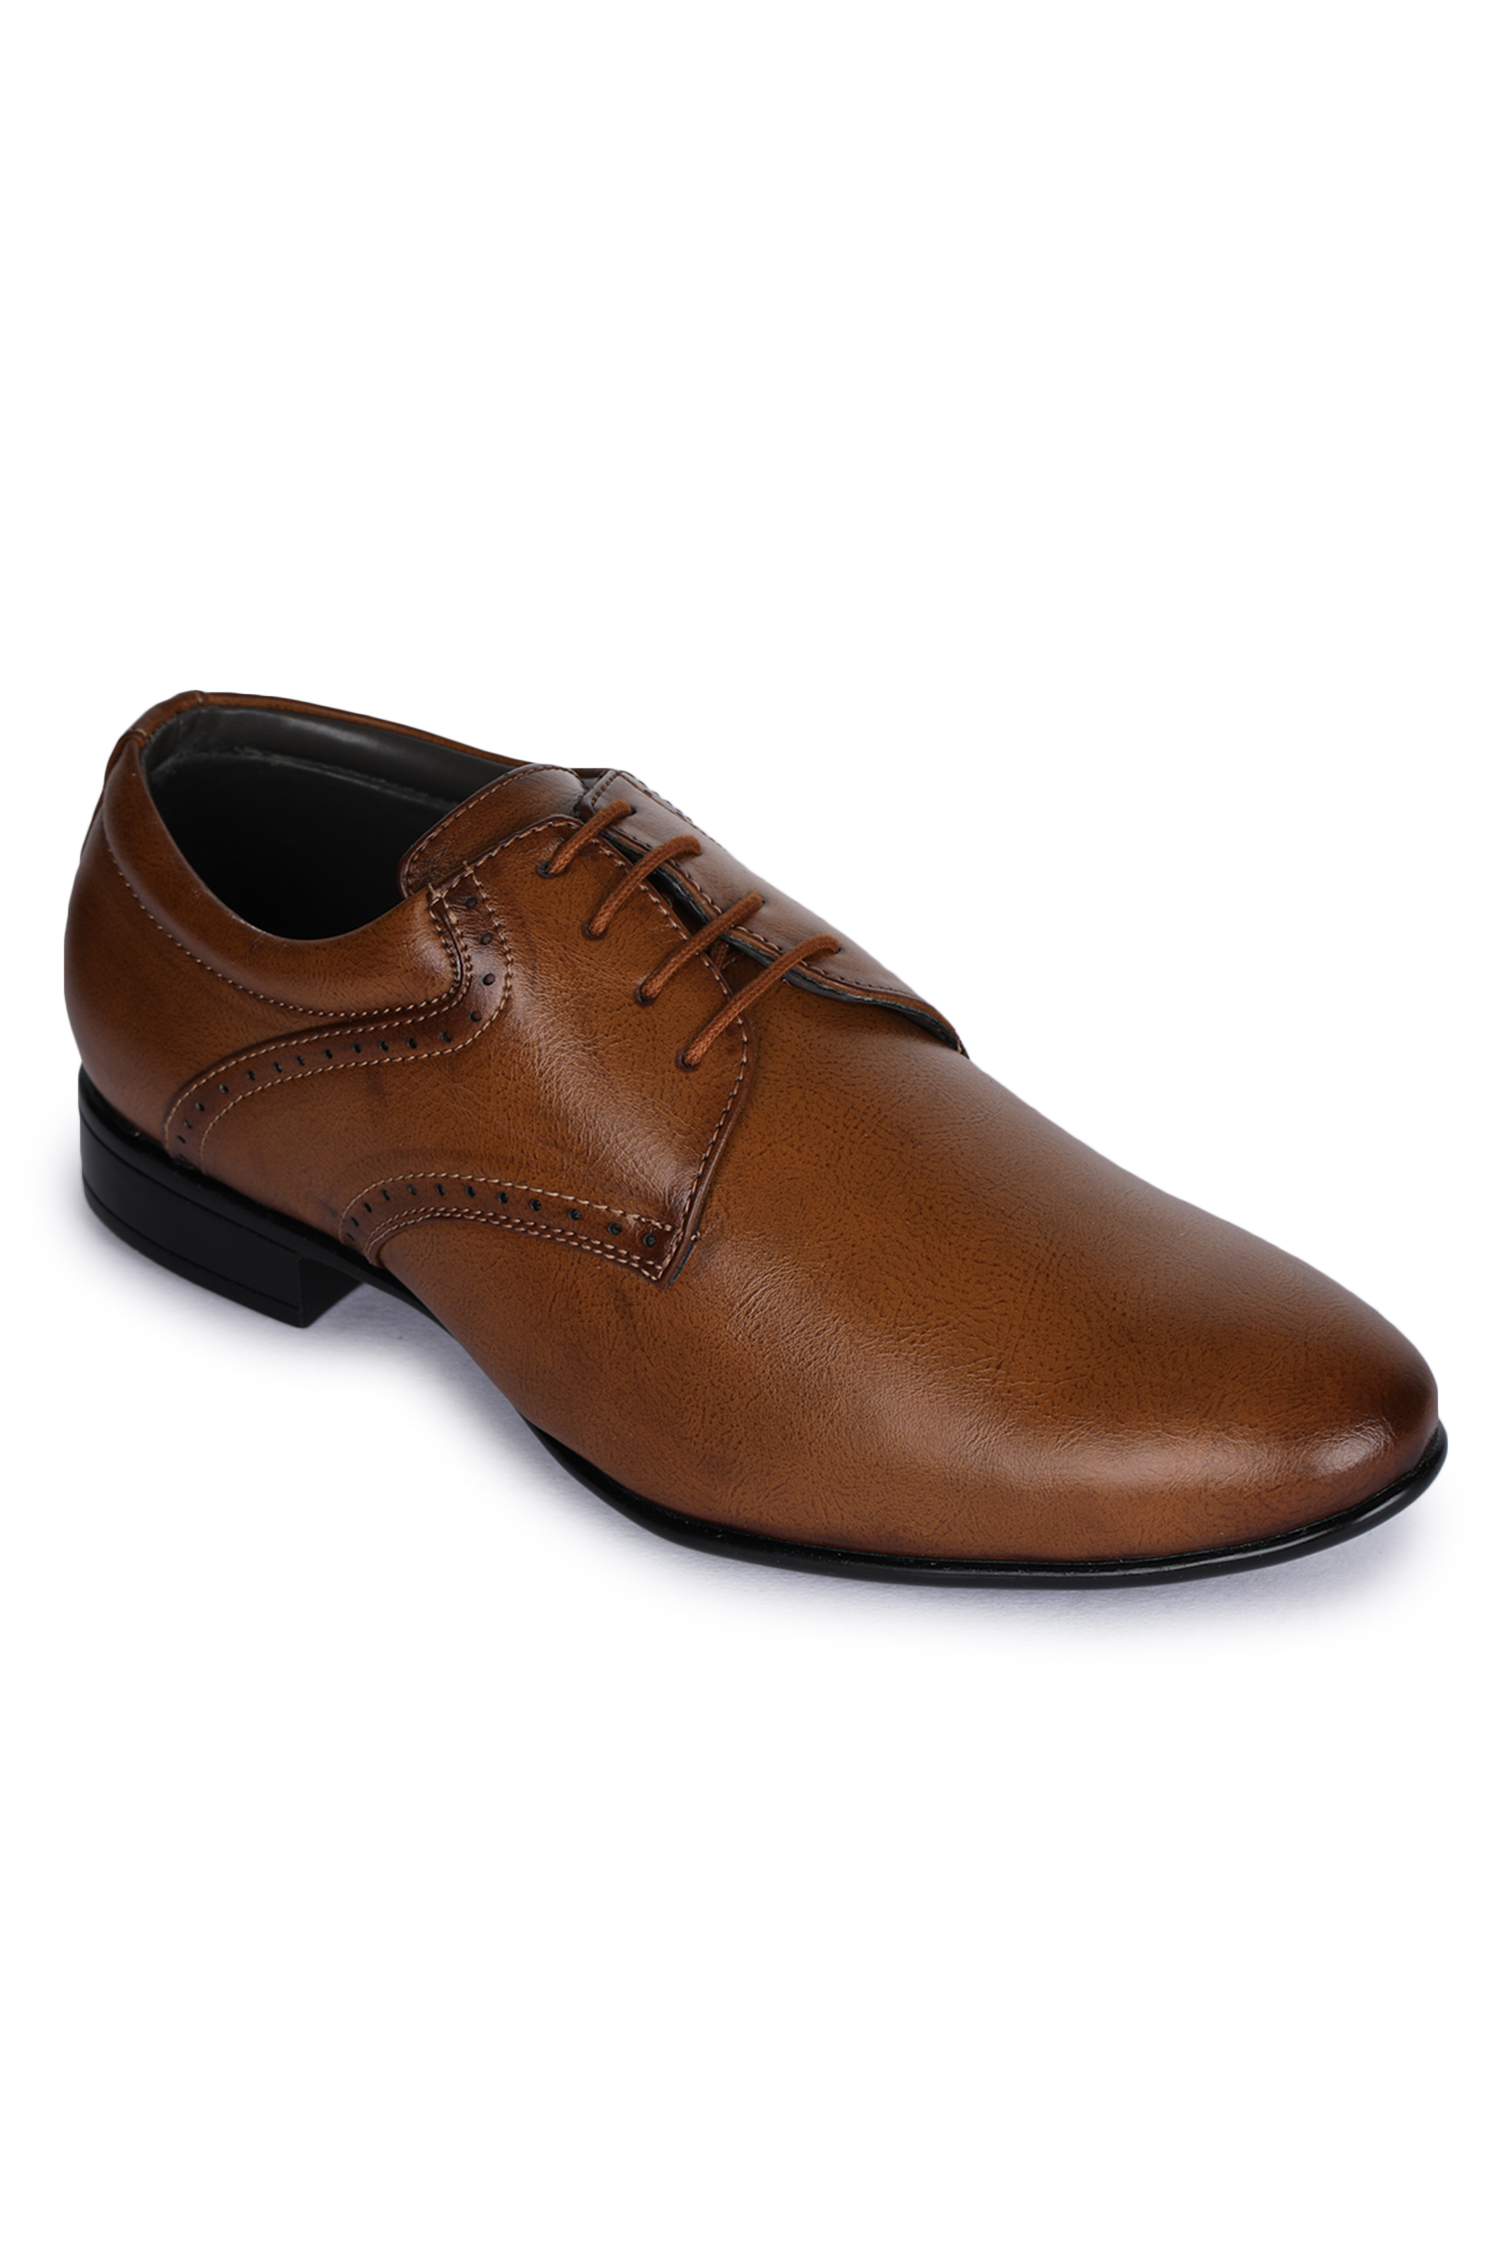 Liberty | Liberty Fortune Brown Formal Derby Shoes A13-03_Brown For - Men